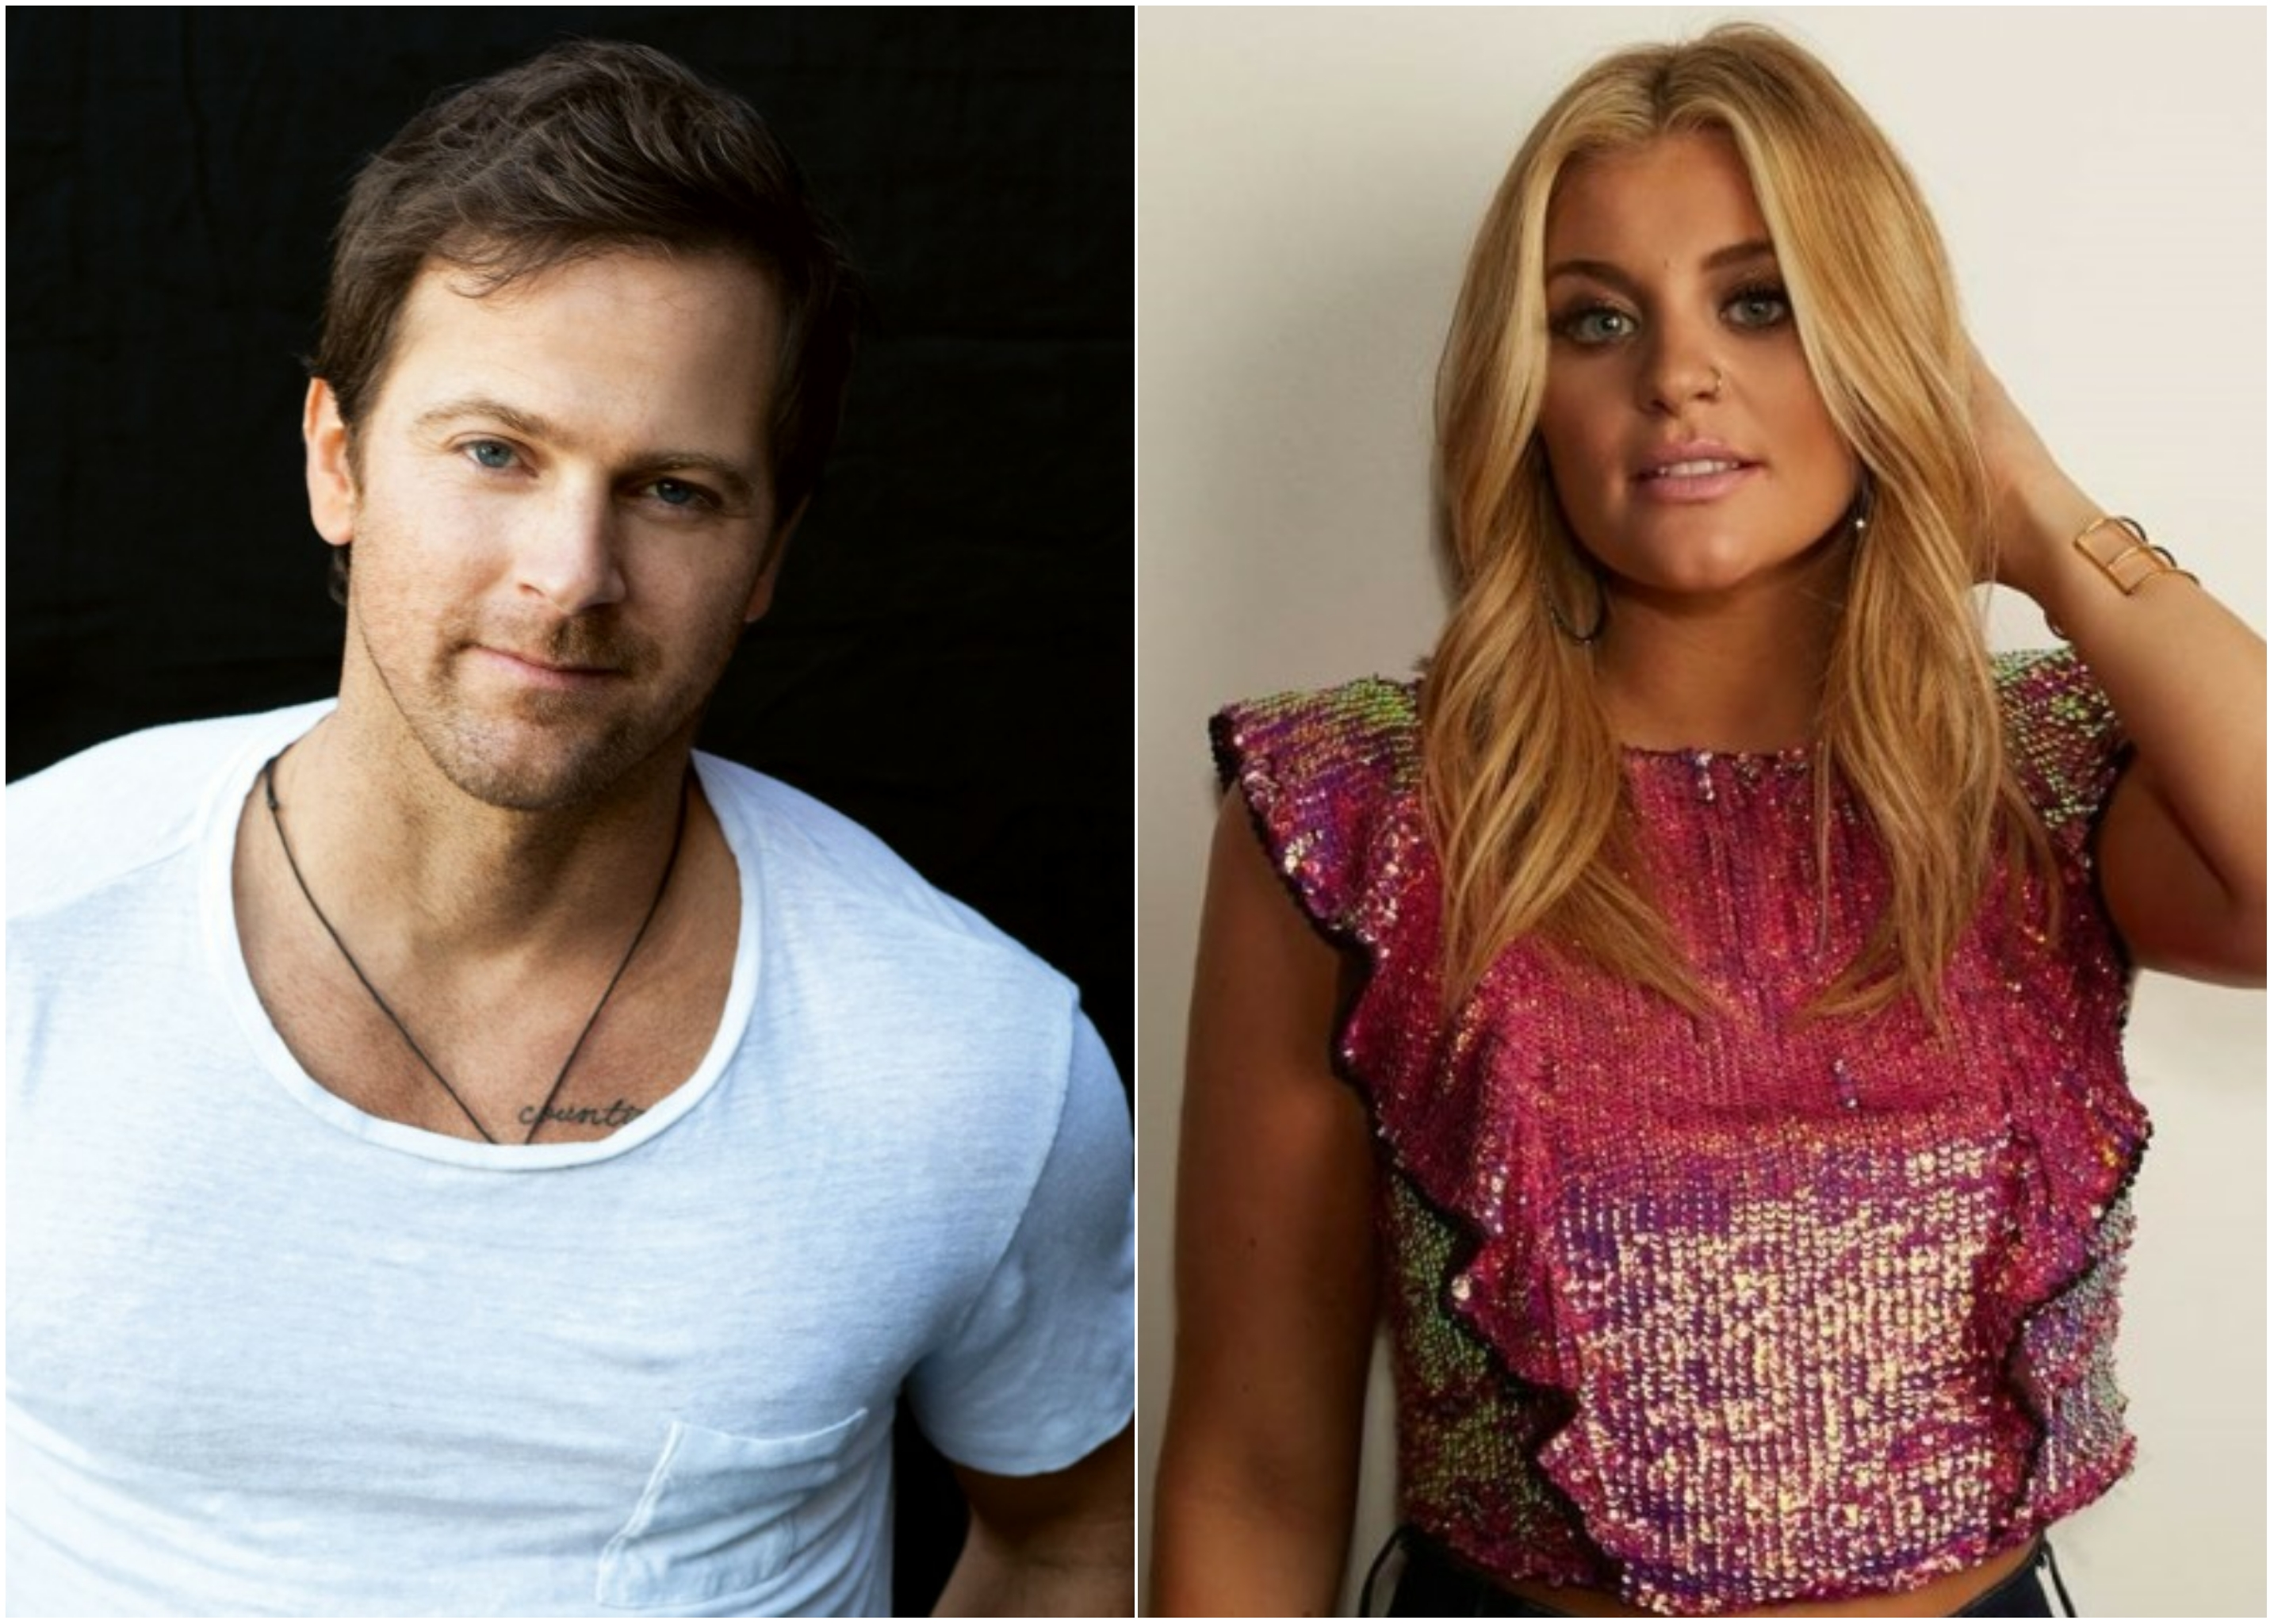 Lauren alaina dating kip moore